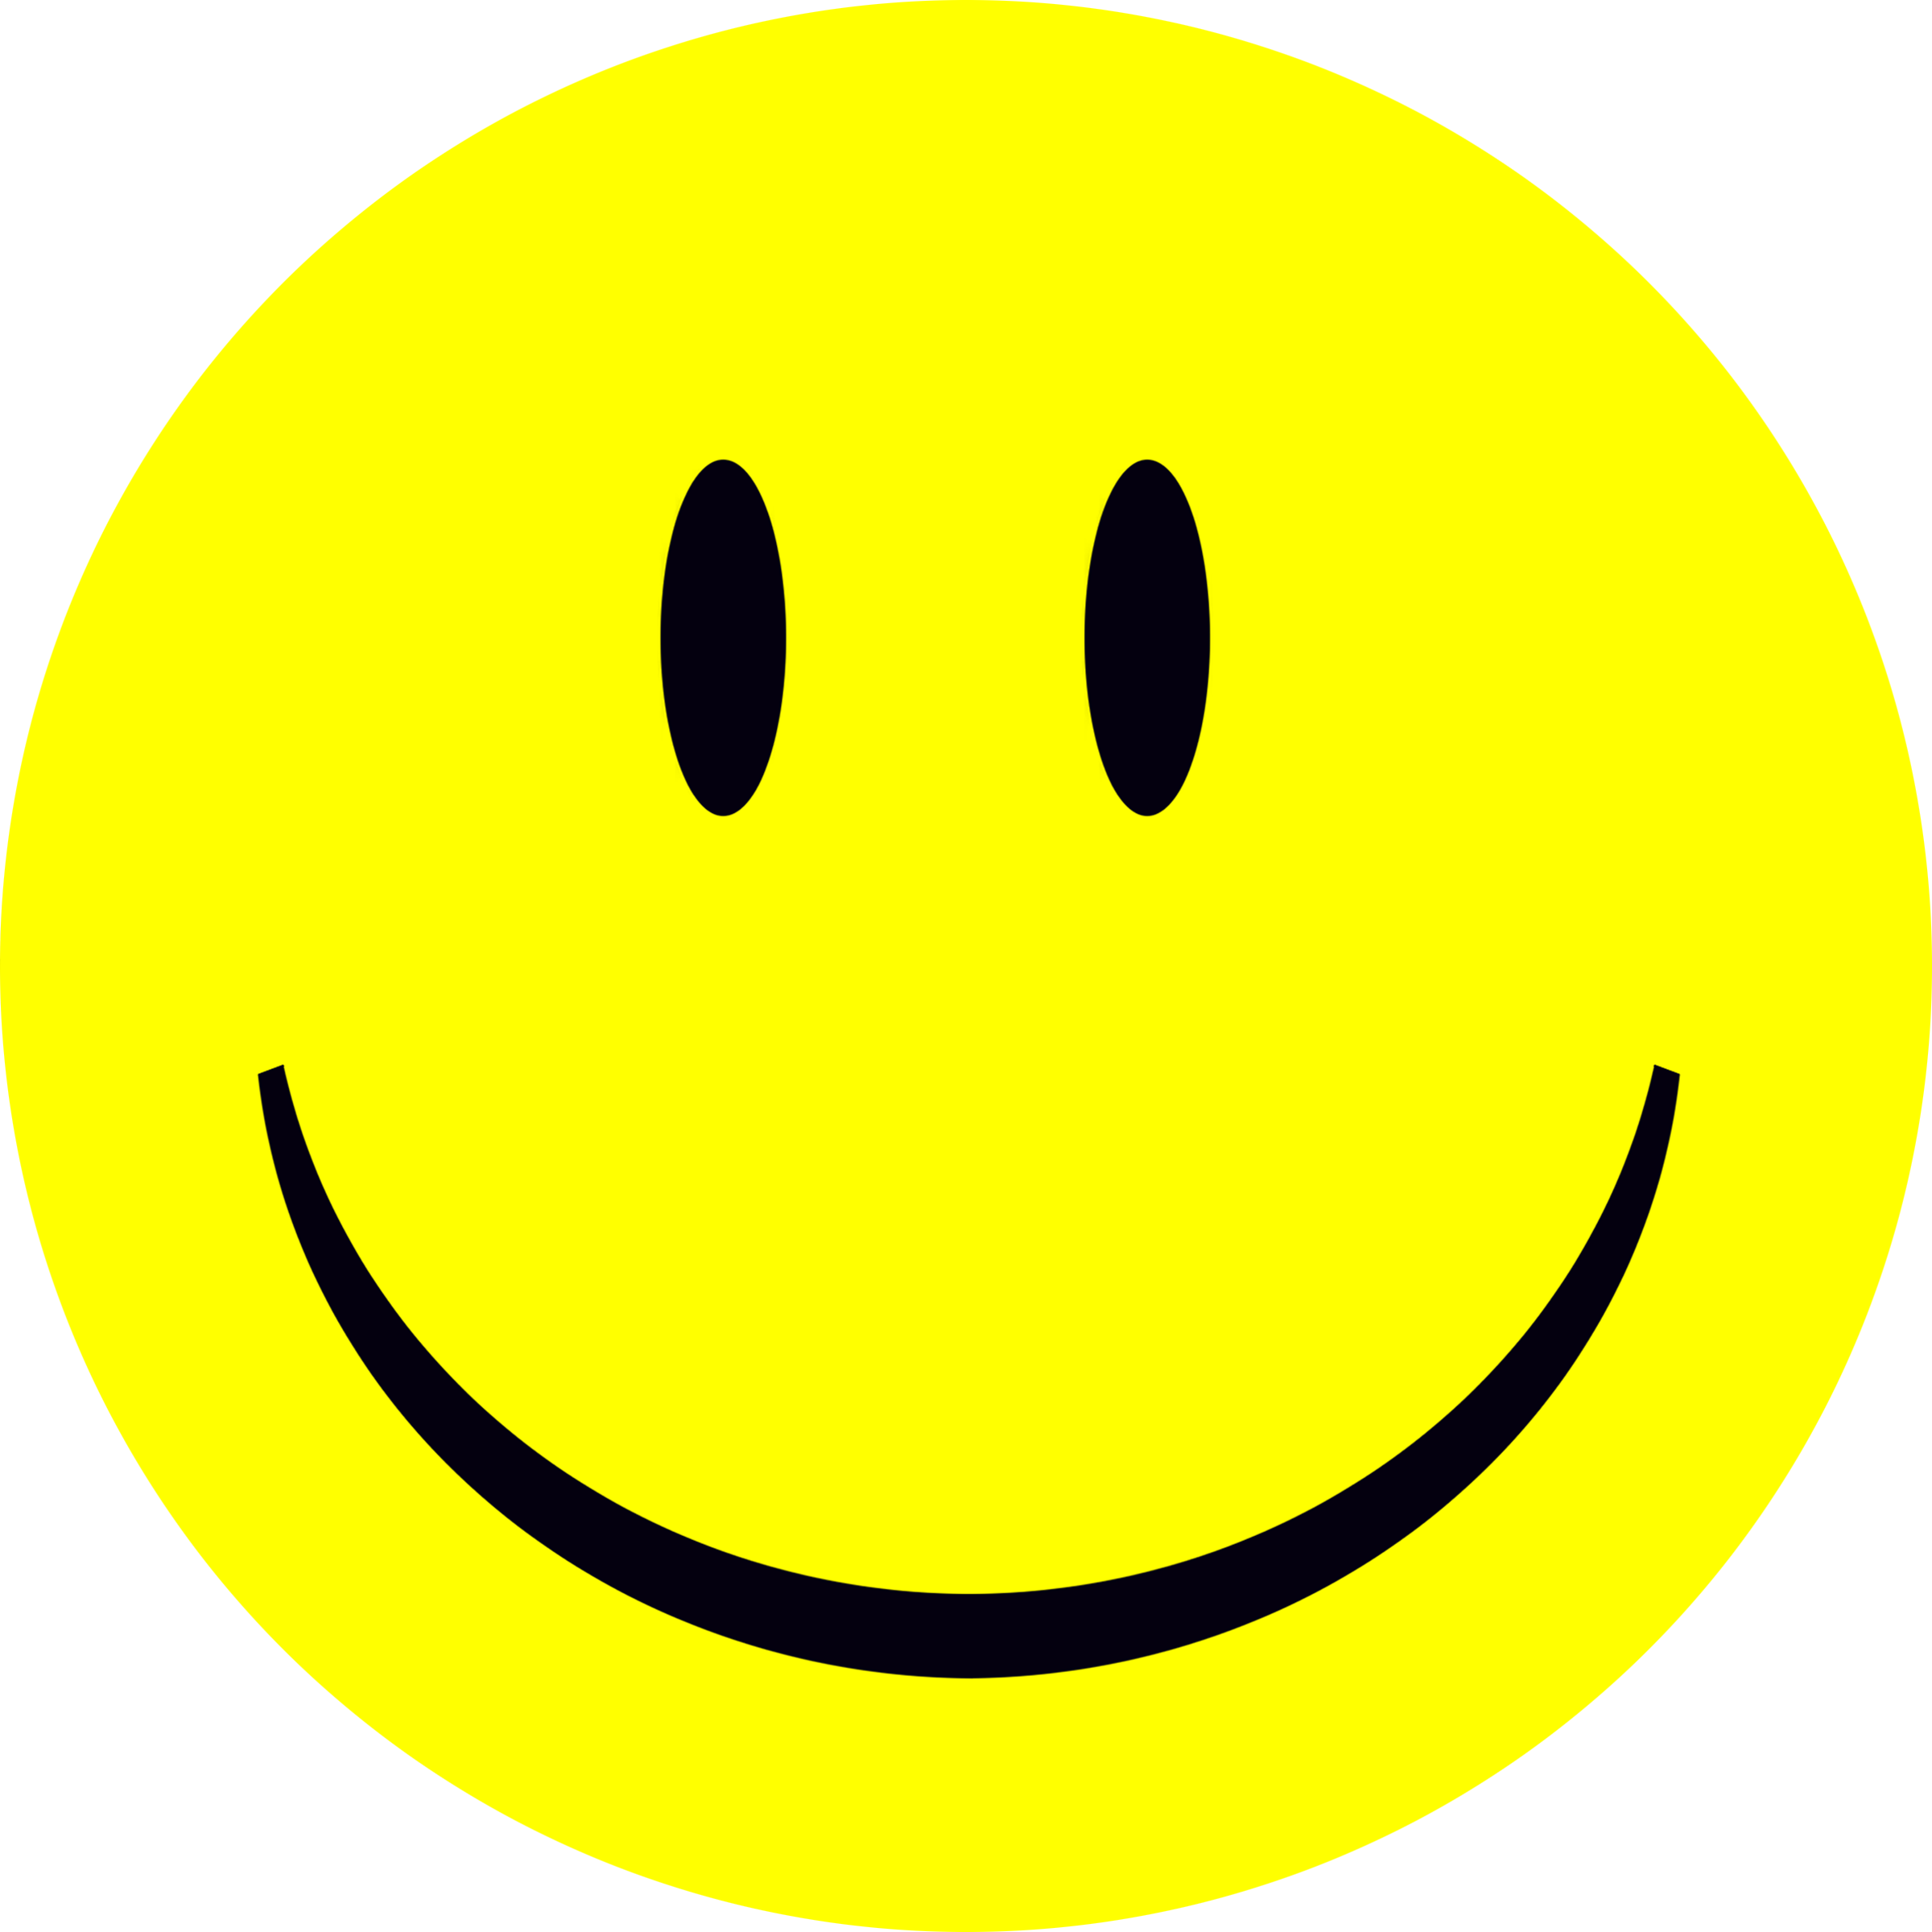 Excited clipart expression. Pictures of happy faces